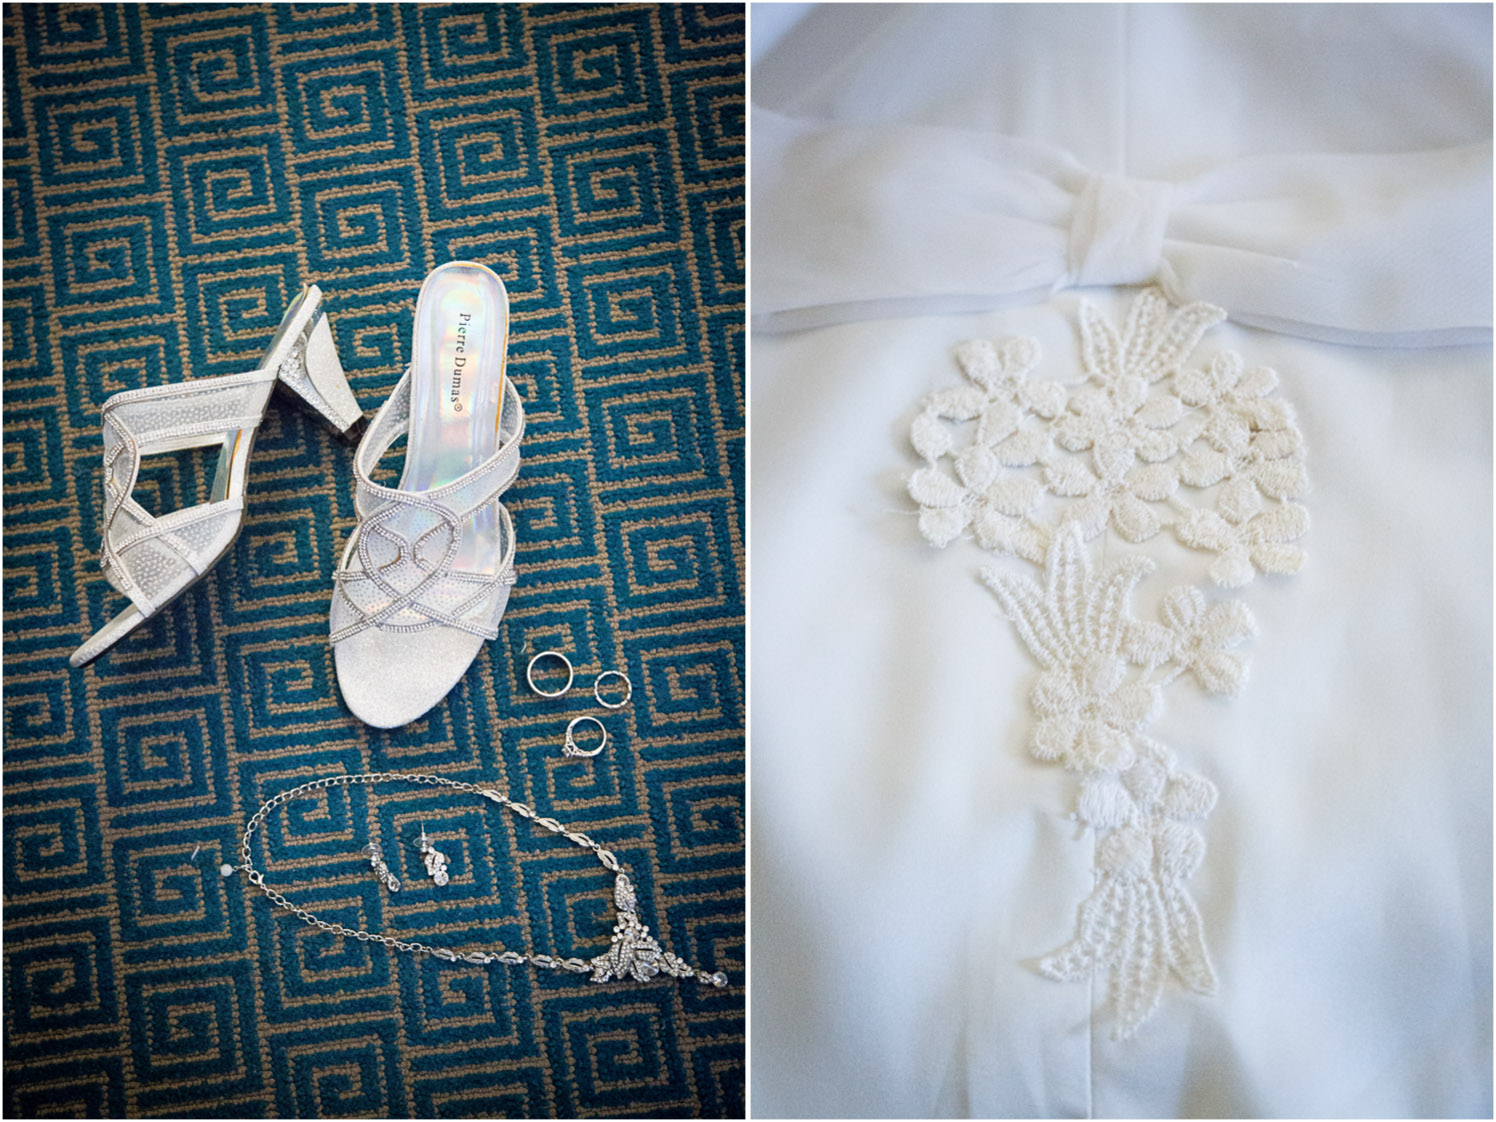 02-wedding-day-details-jewelry-shoes-heirloom-lace-mahonen-photography.jpg